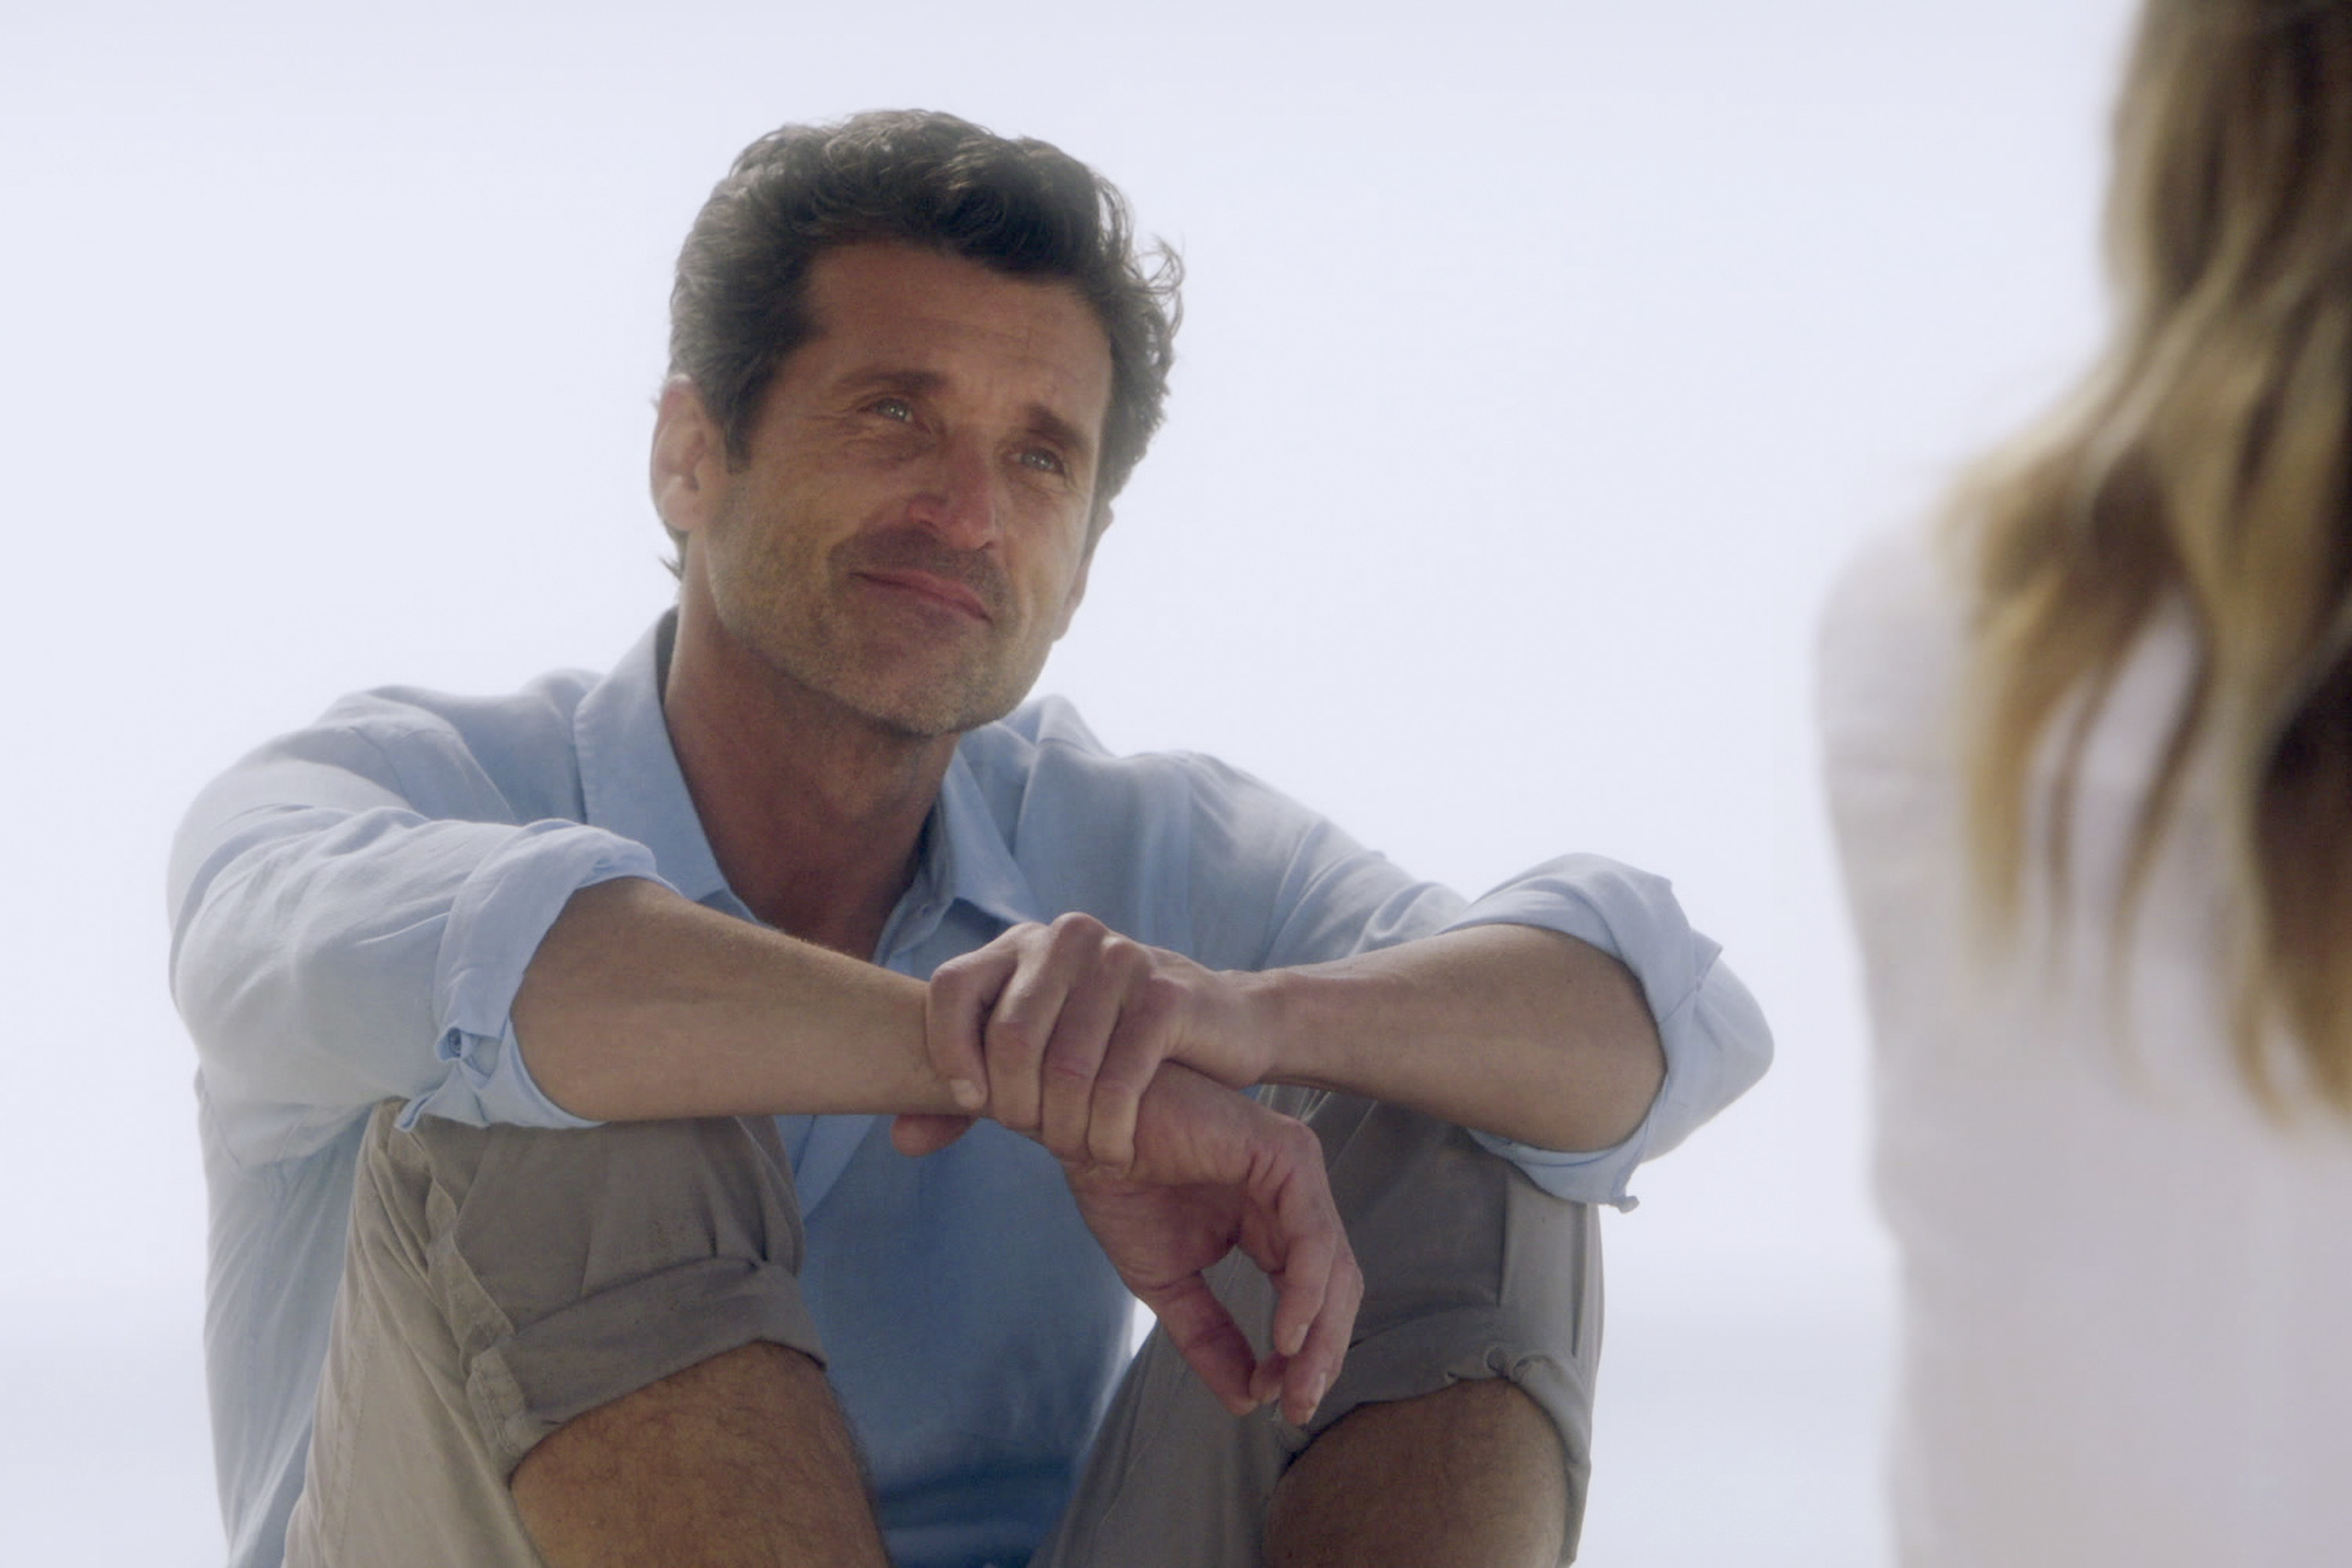 Dempsey sits with his arms on his knees in Grey's Anatomy